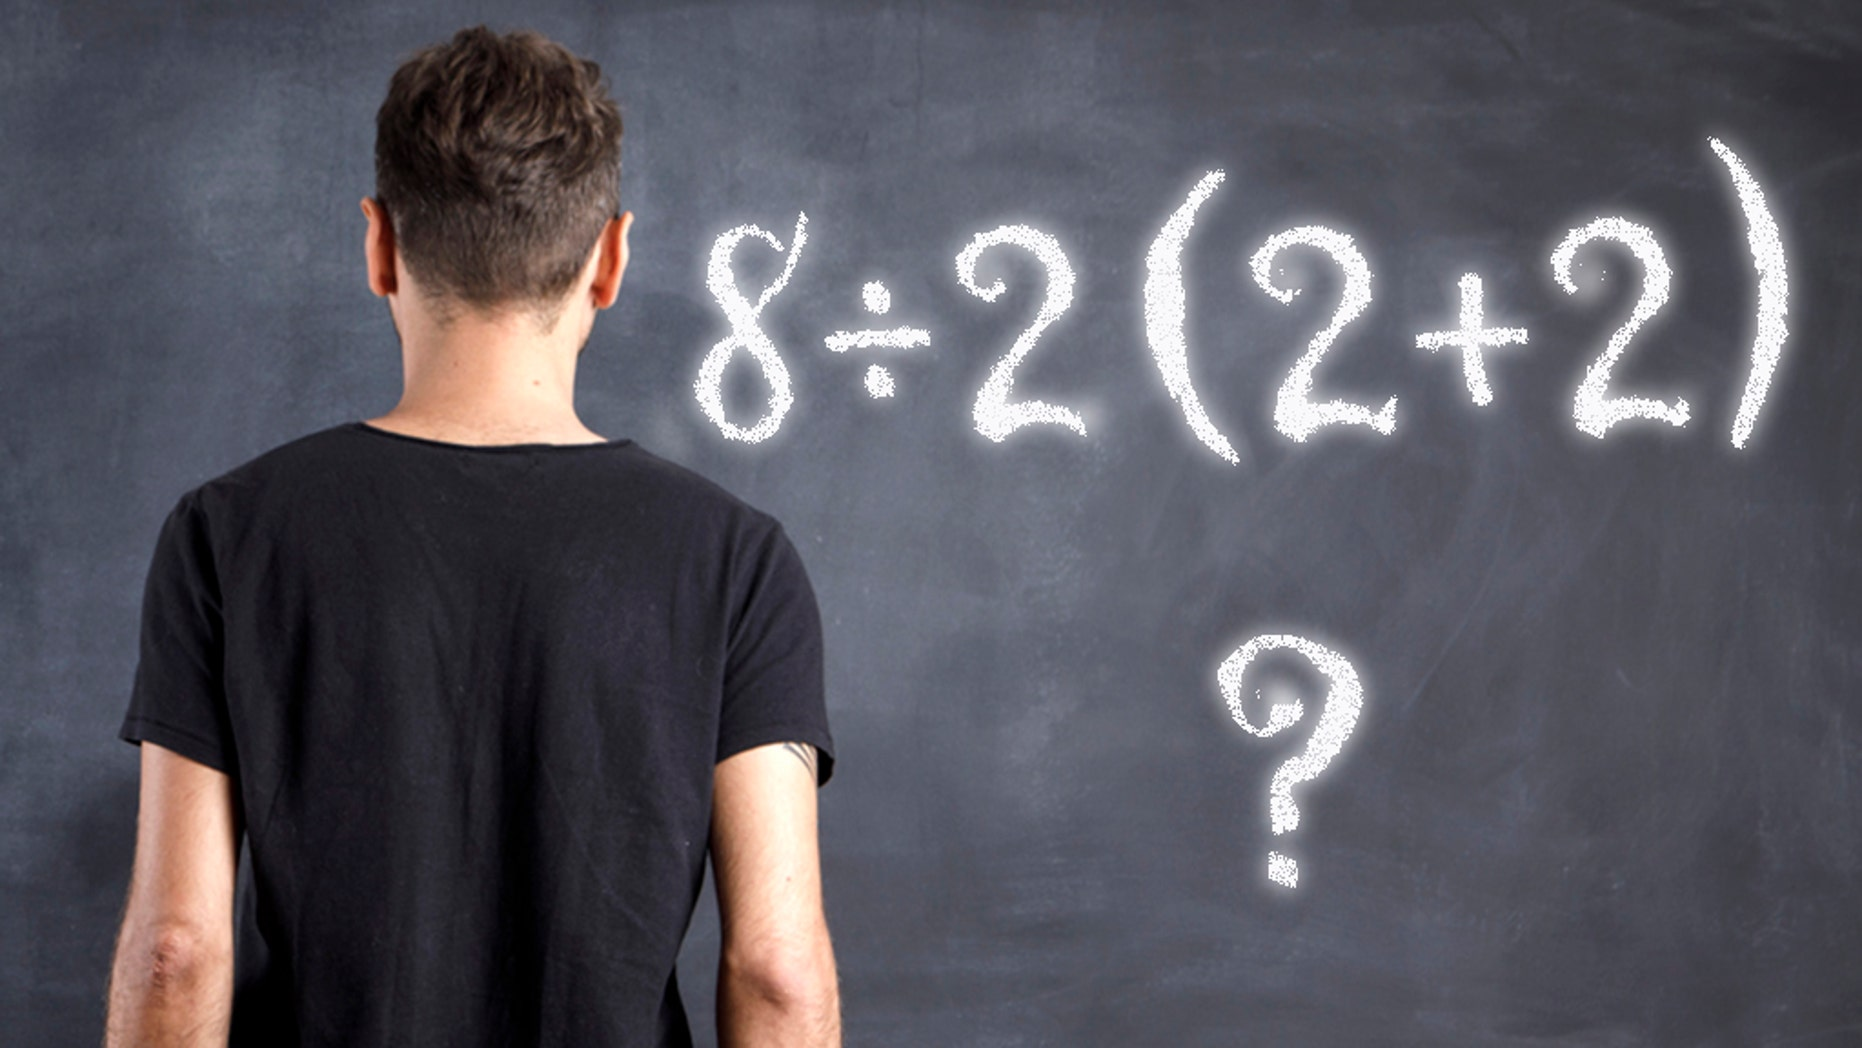 A simple math problem has divided the internet